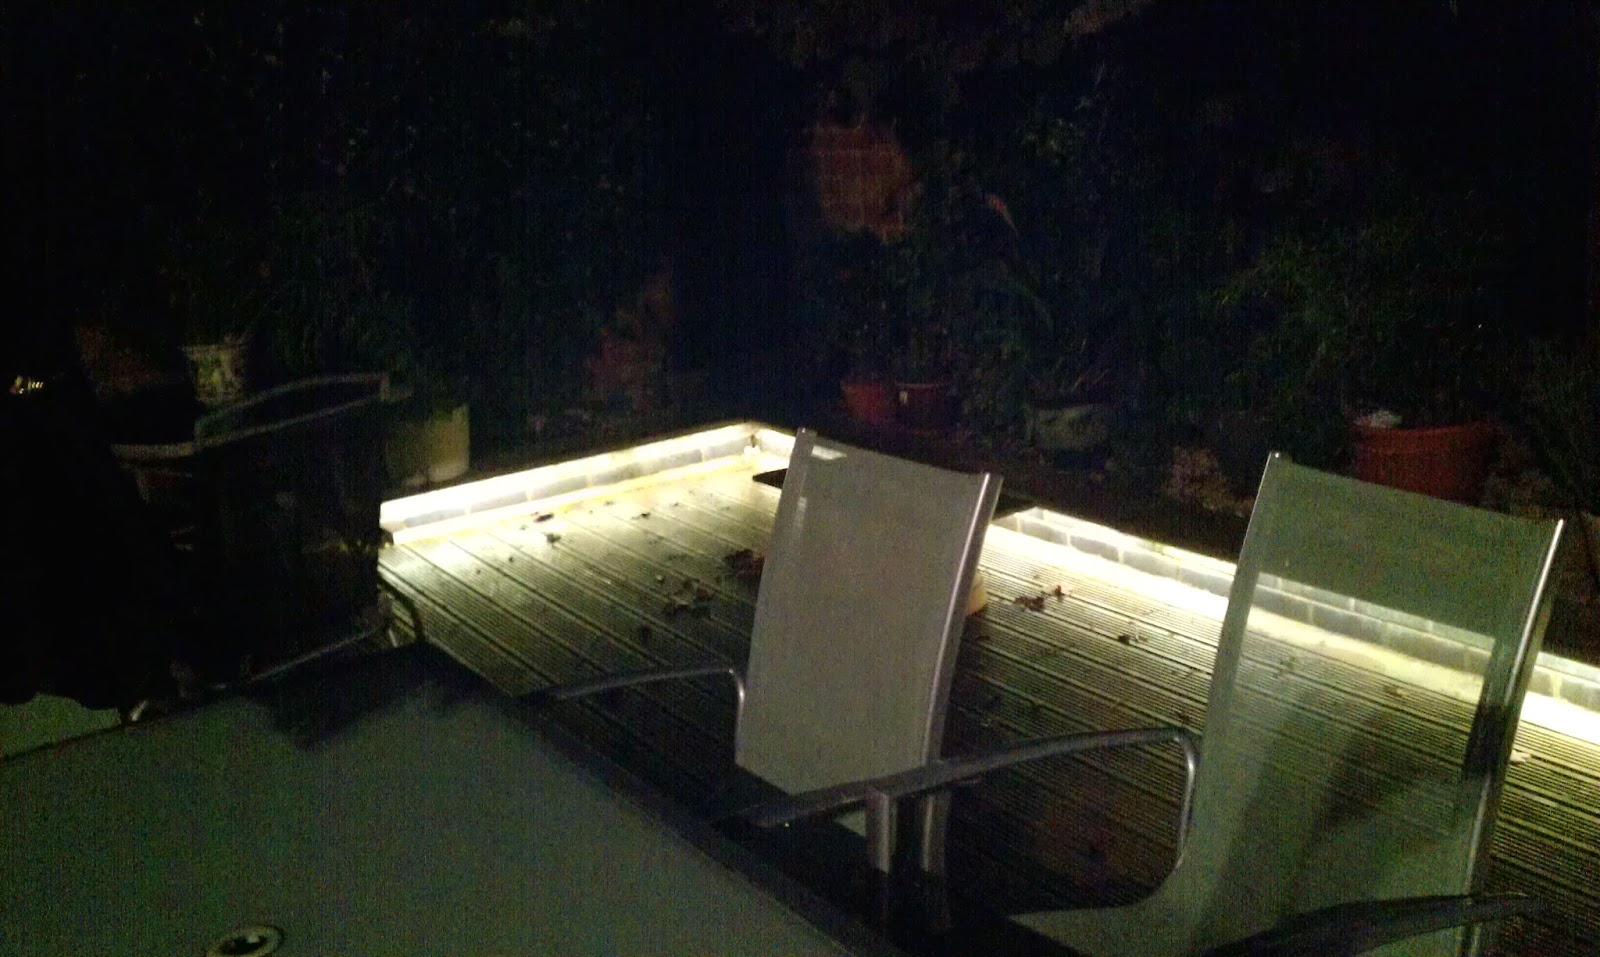 Perfect Even Though Your Garden Isnu0027t Really Part Of The House, It Can Still  Benefit From An Imaginative LED Tape Installation. You Can Draw Focus To  Feature Areas ...